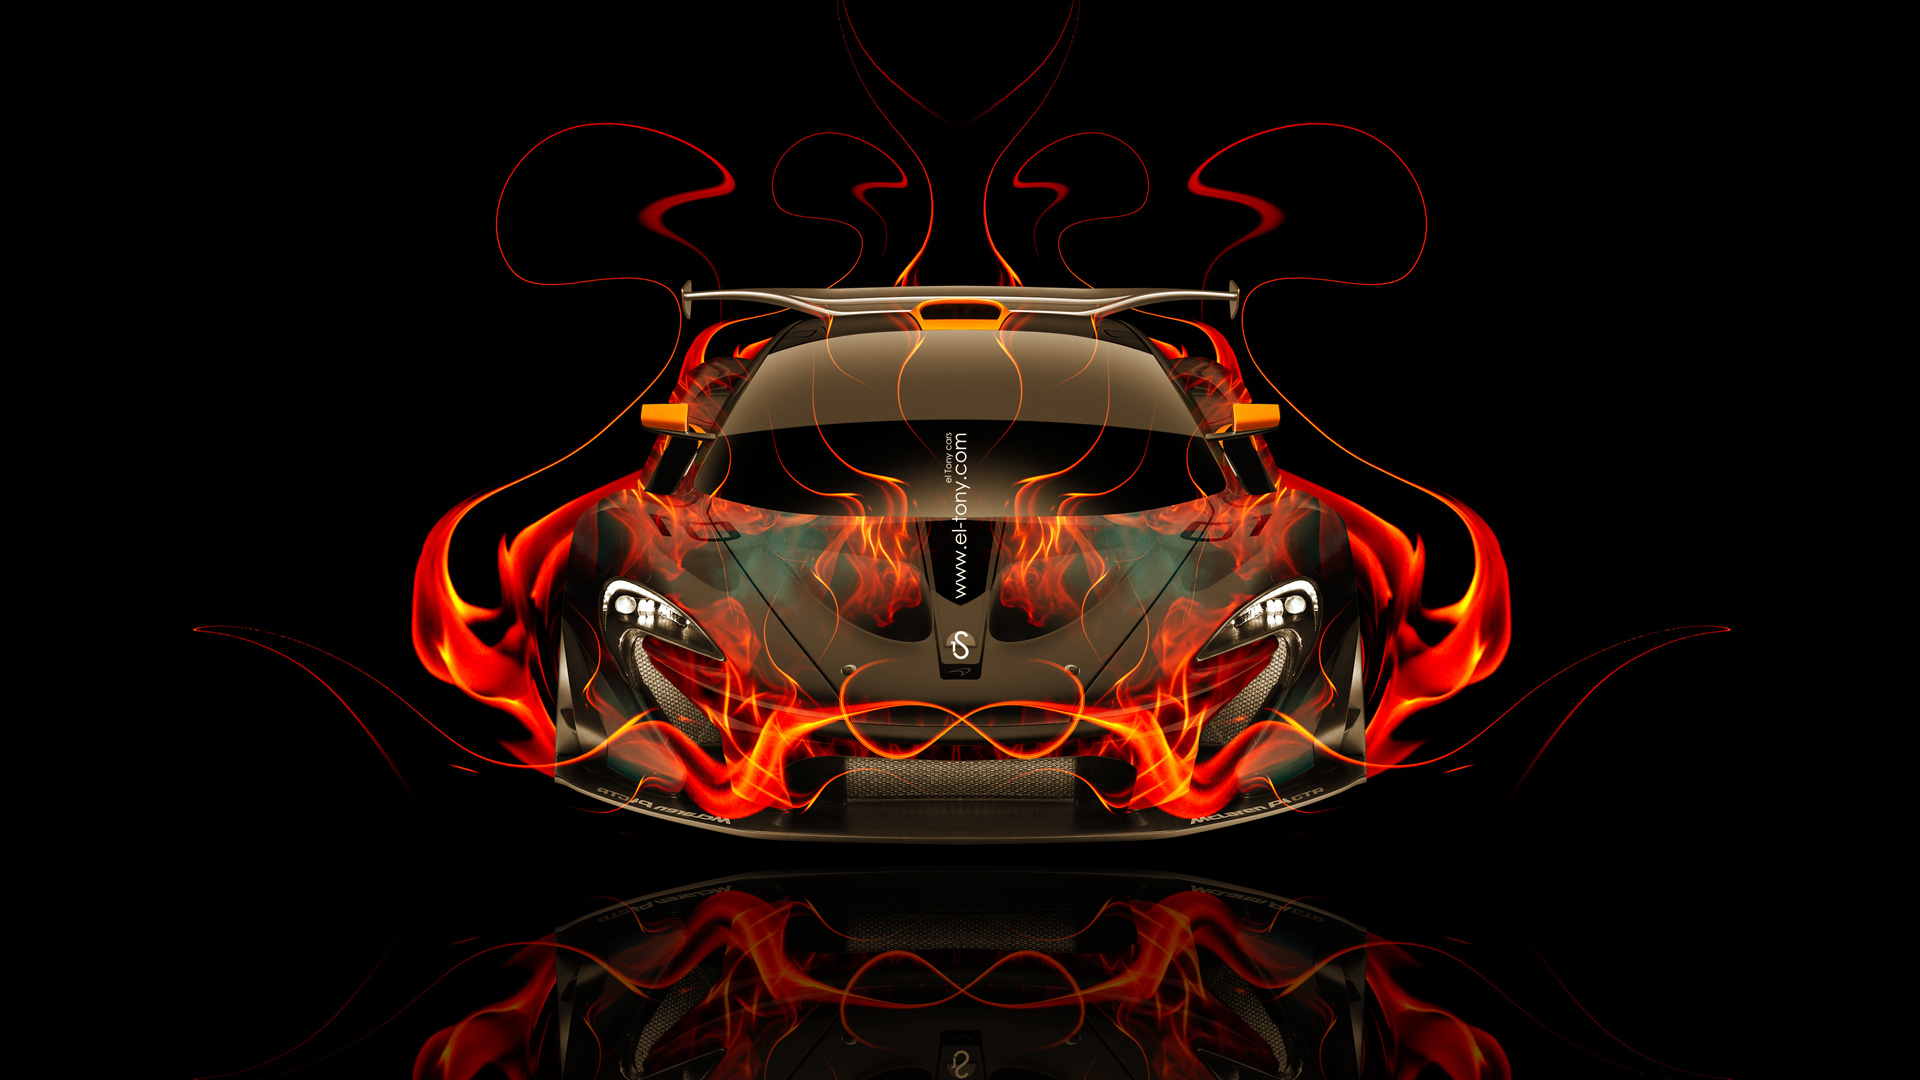 Etonnant McLaren P1 GTR FrontUp Fire Abstract Car 2014